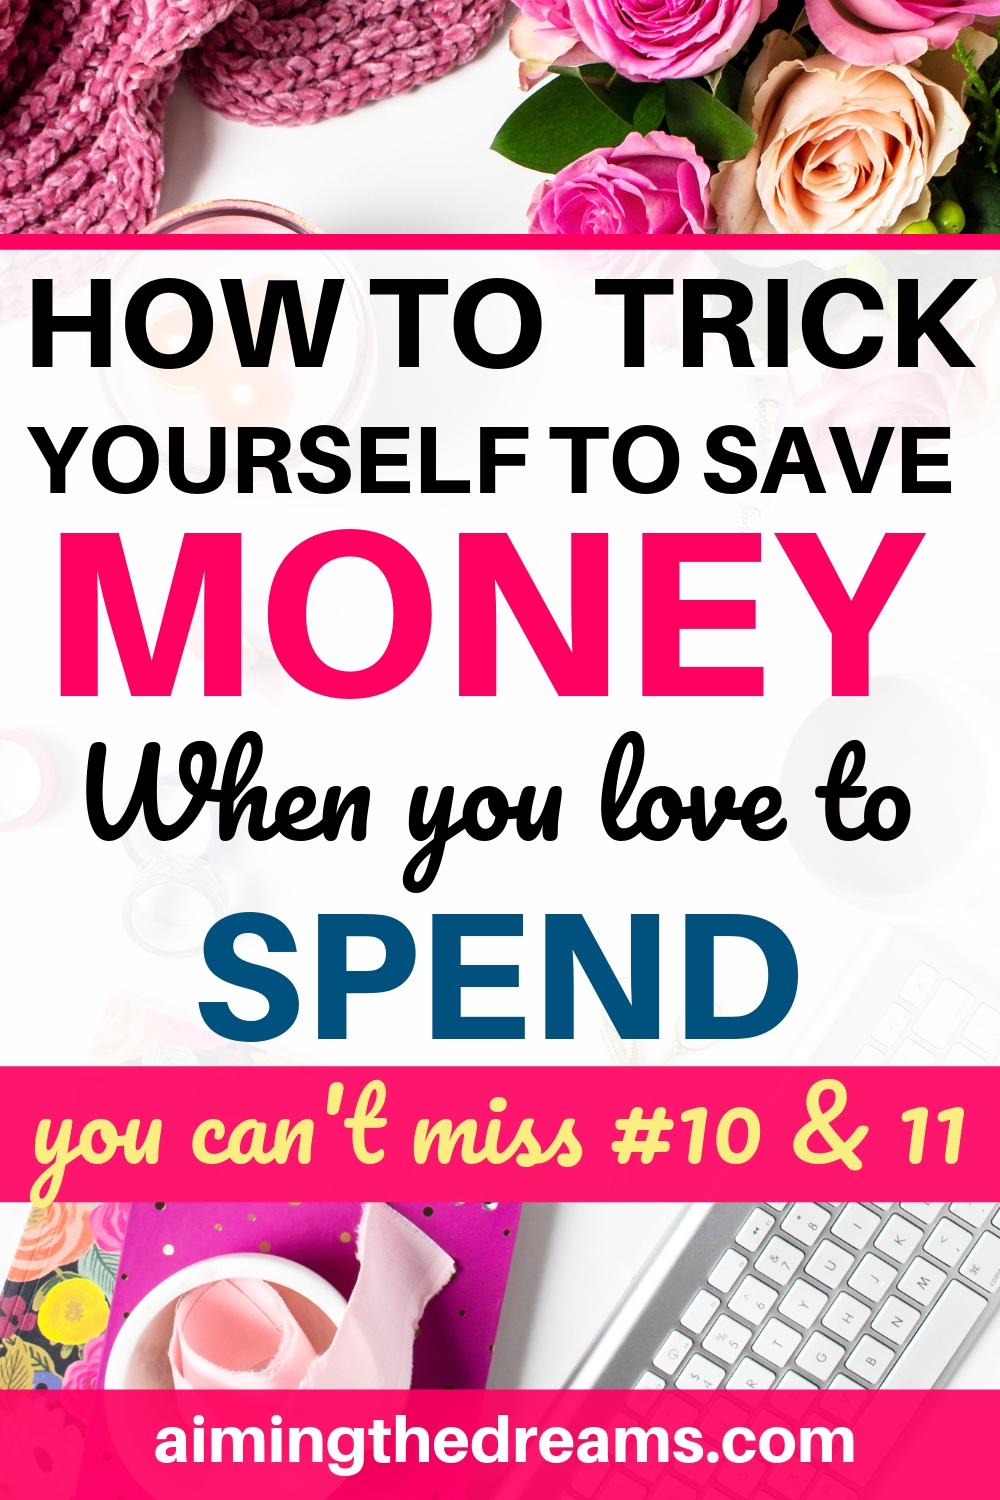 How to trick yourself to save money when you love to spend.